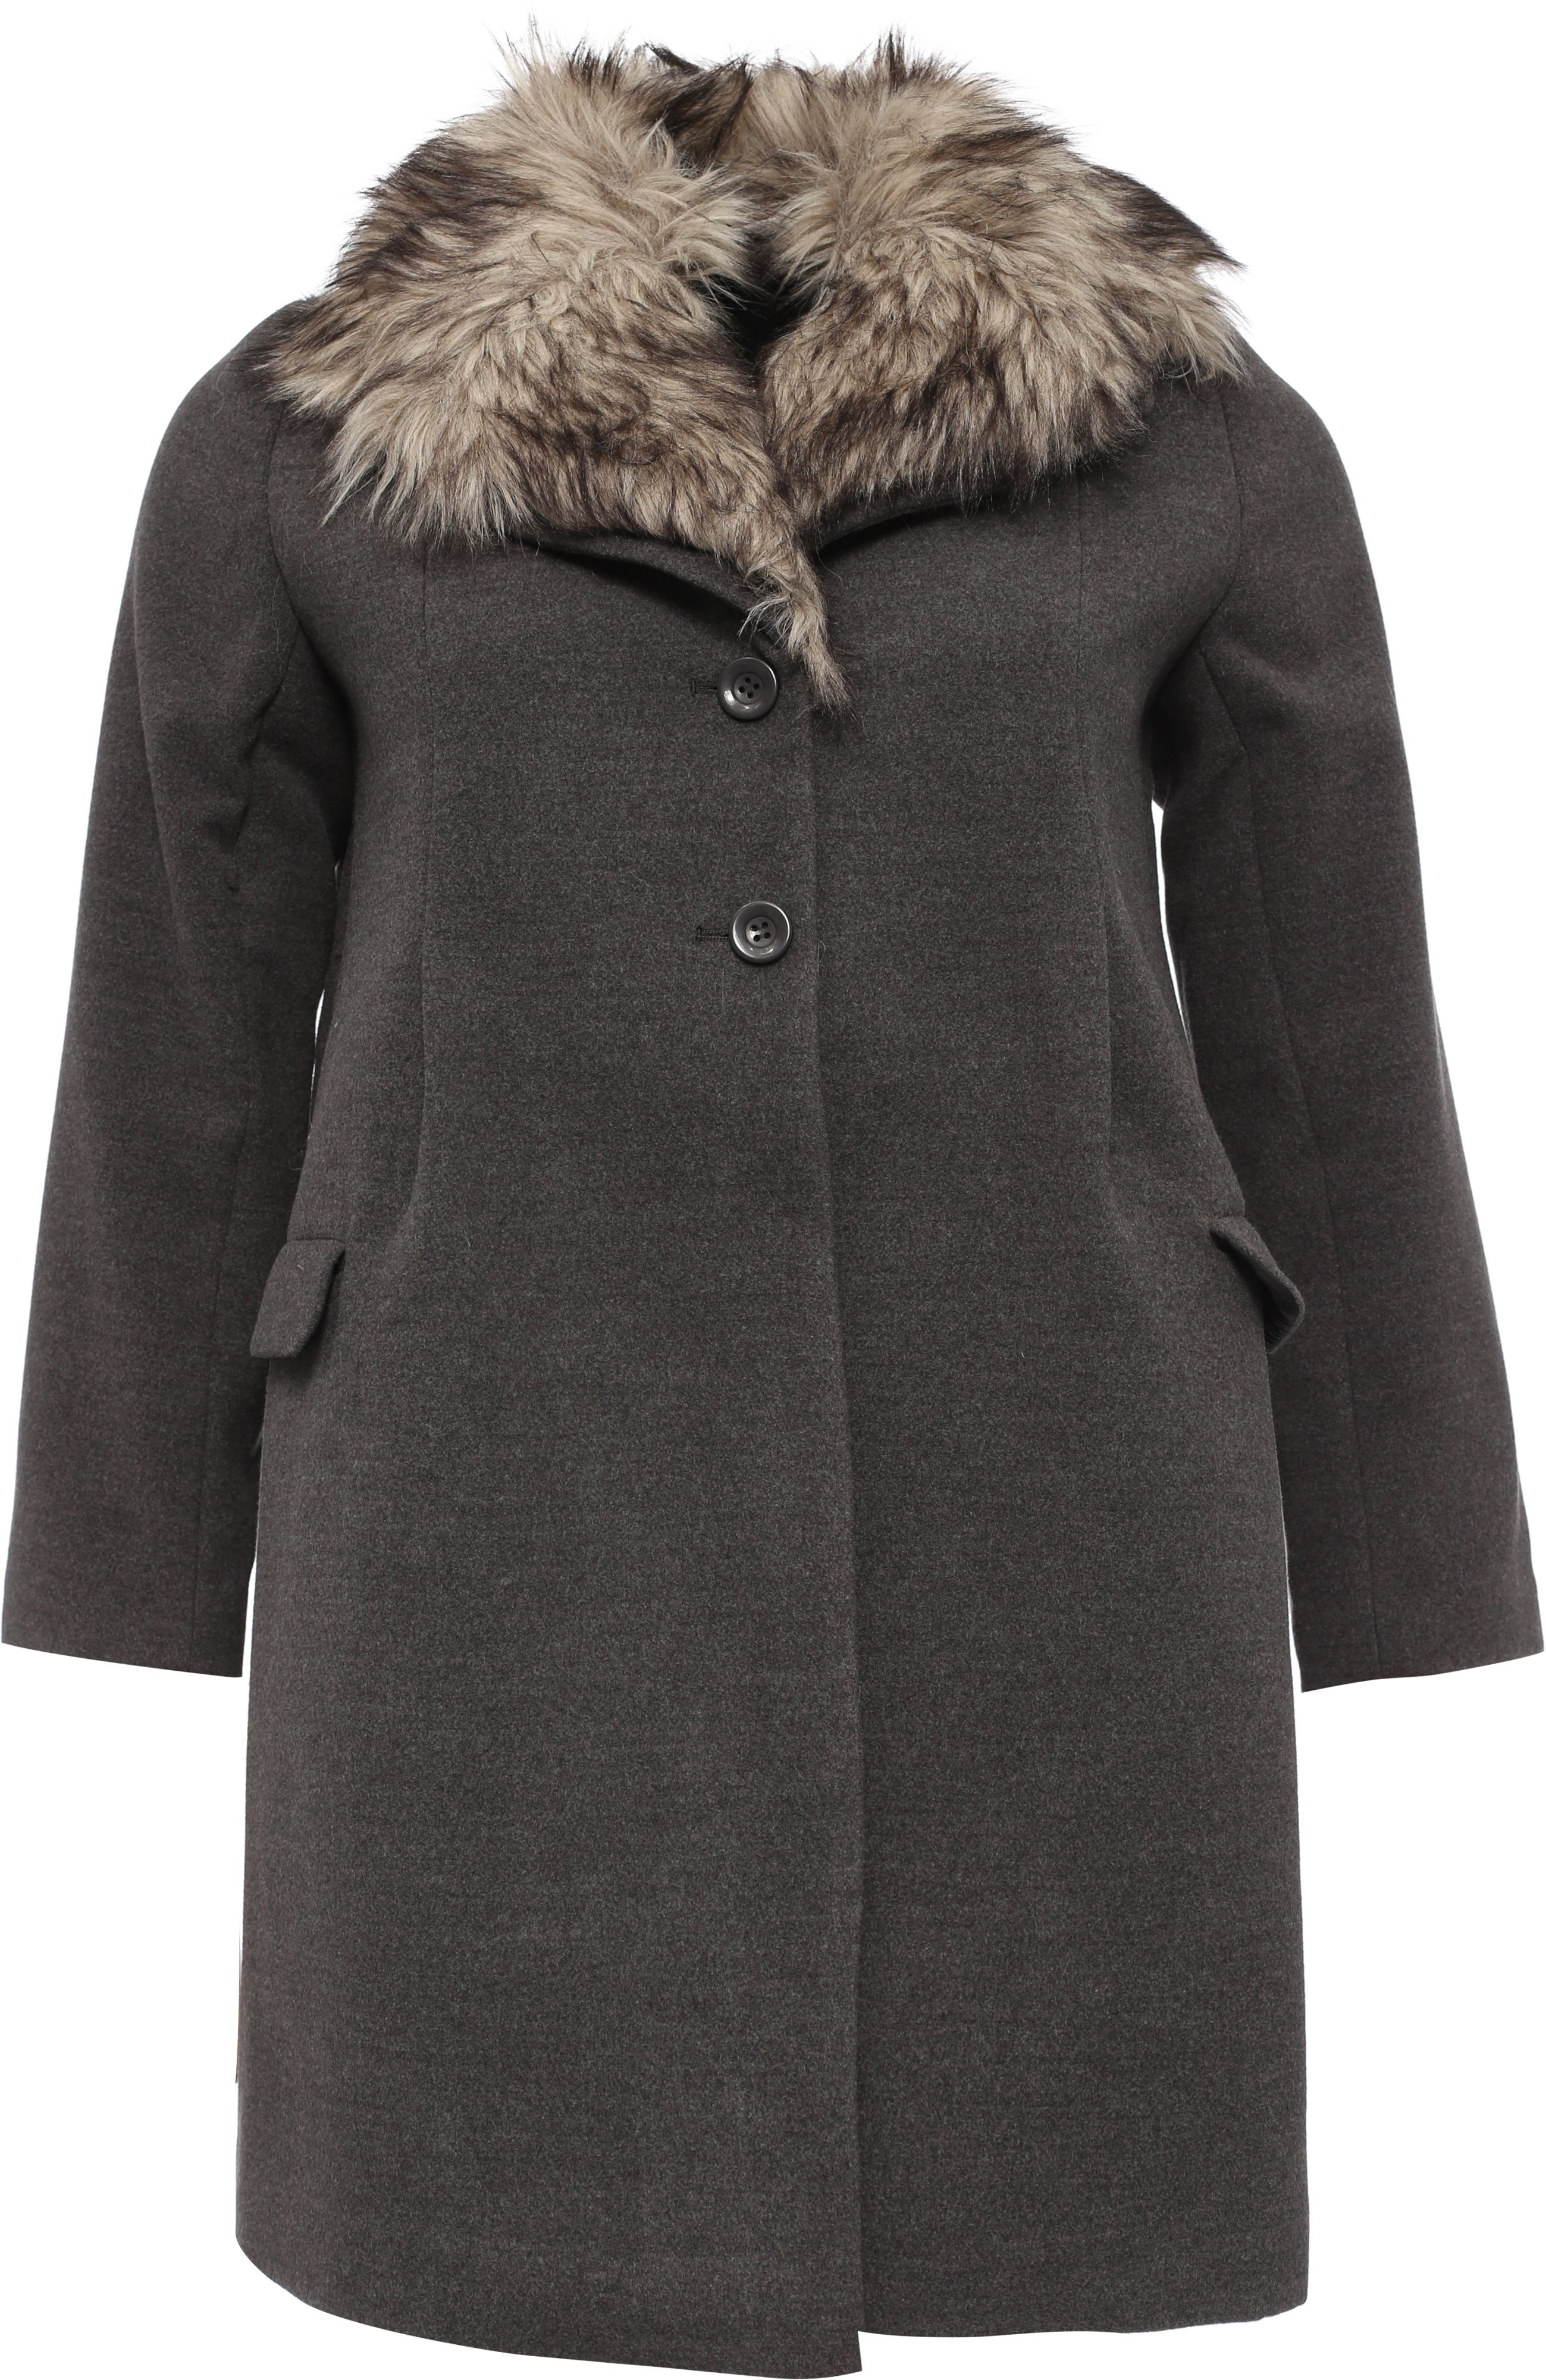 Lost Ink Curve Swing Coat With Fur Collar, Grey